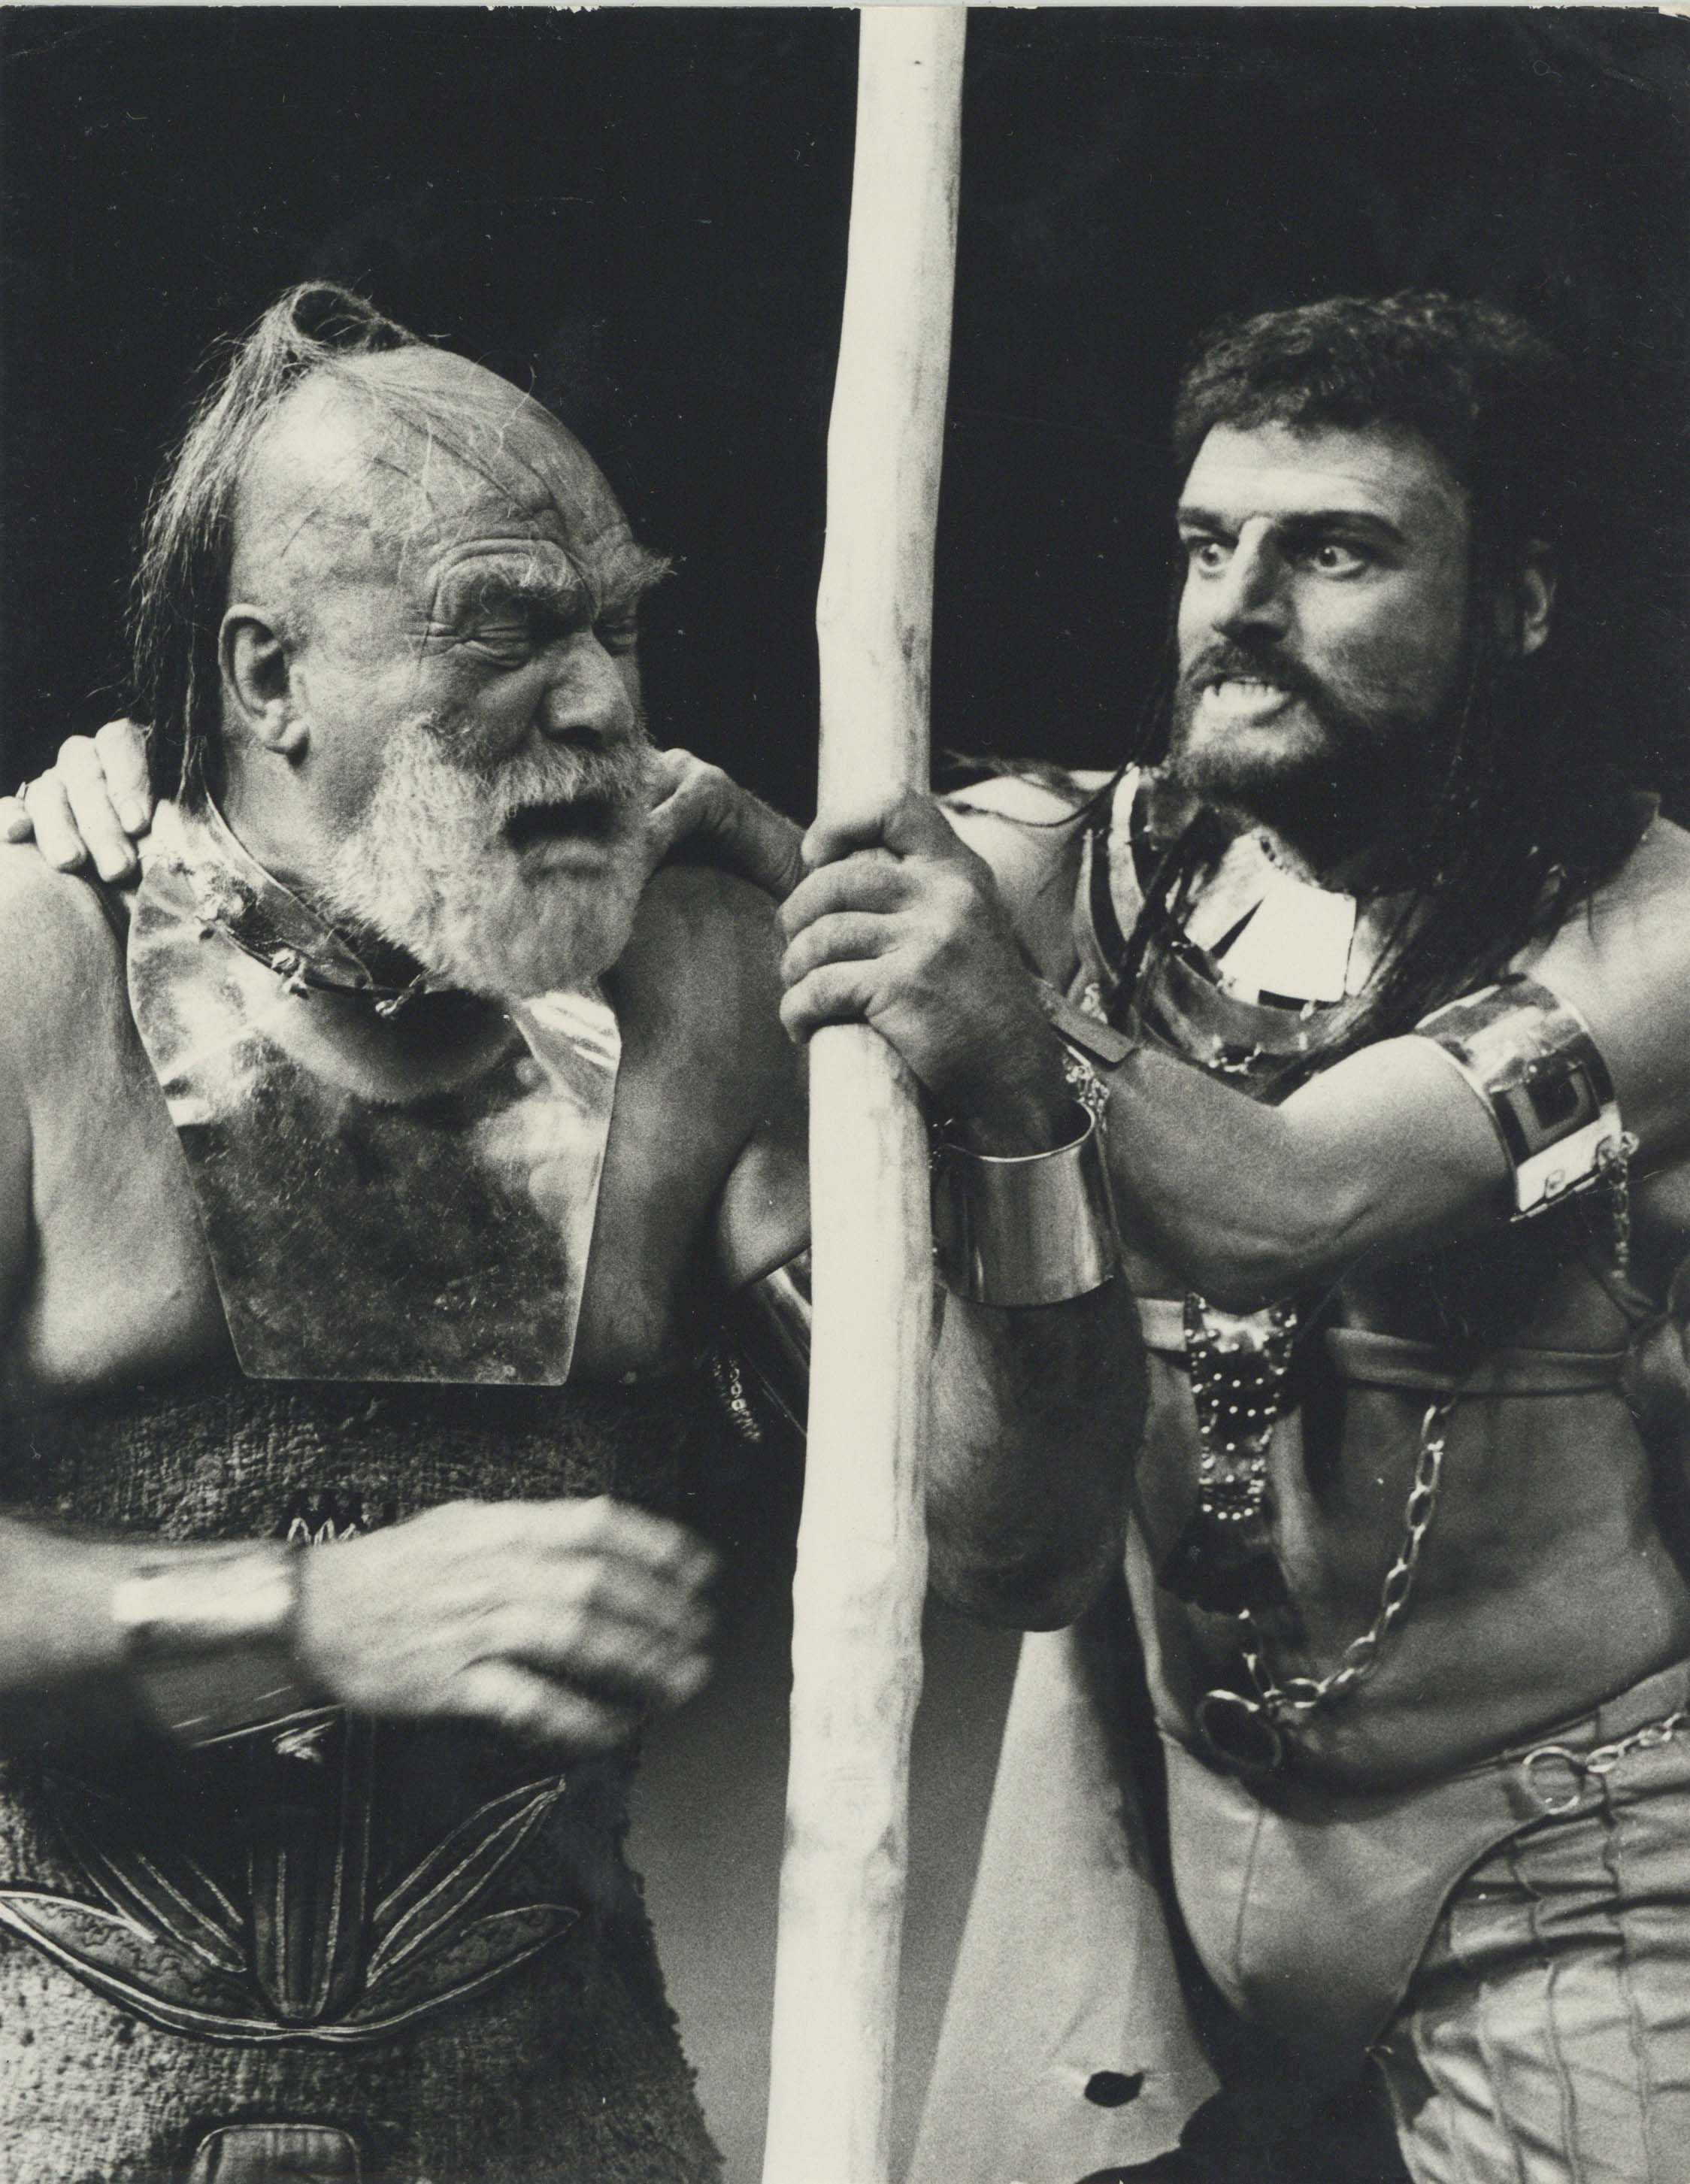 Production Photograph - Oedipus Tyrannus  - Howard Lang, Keith Michell - Photographer Mark Gudgeon - 1974 - H24.5cm W19cm - 1 of 2